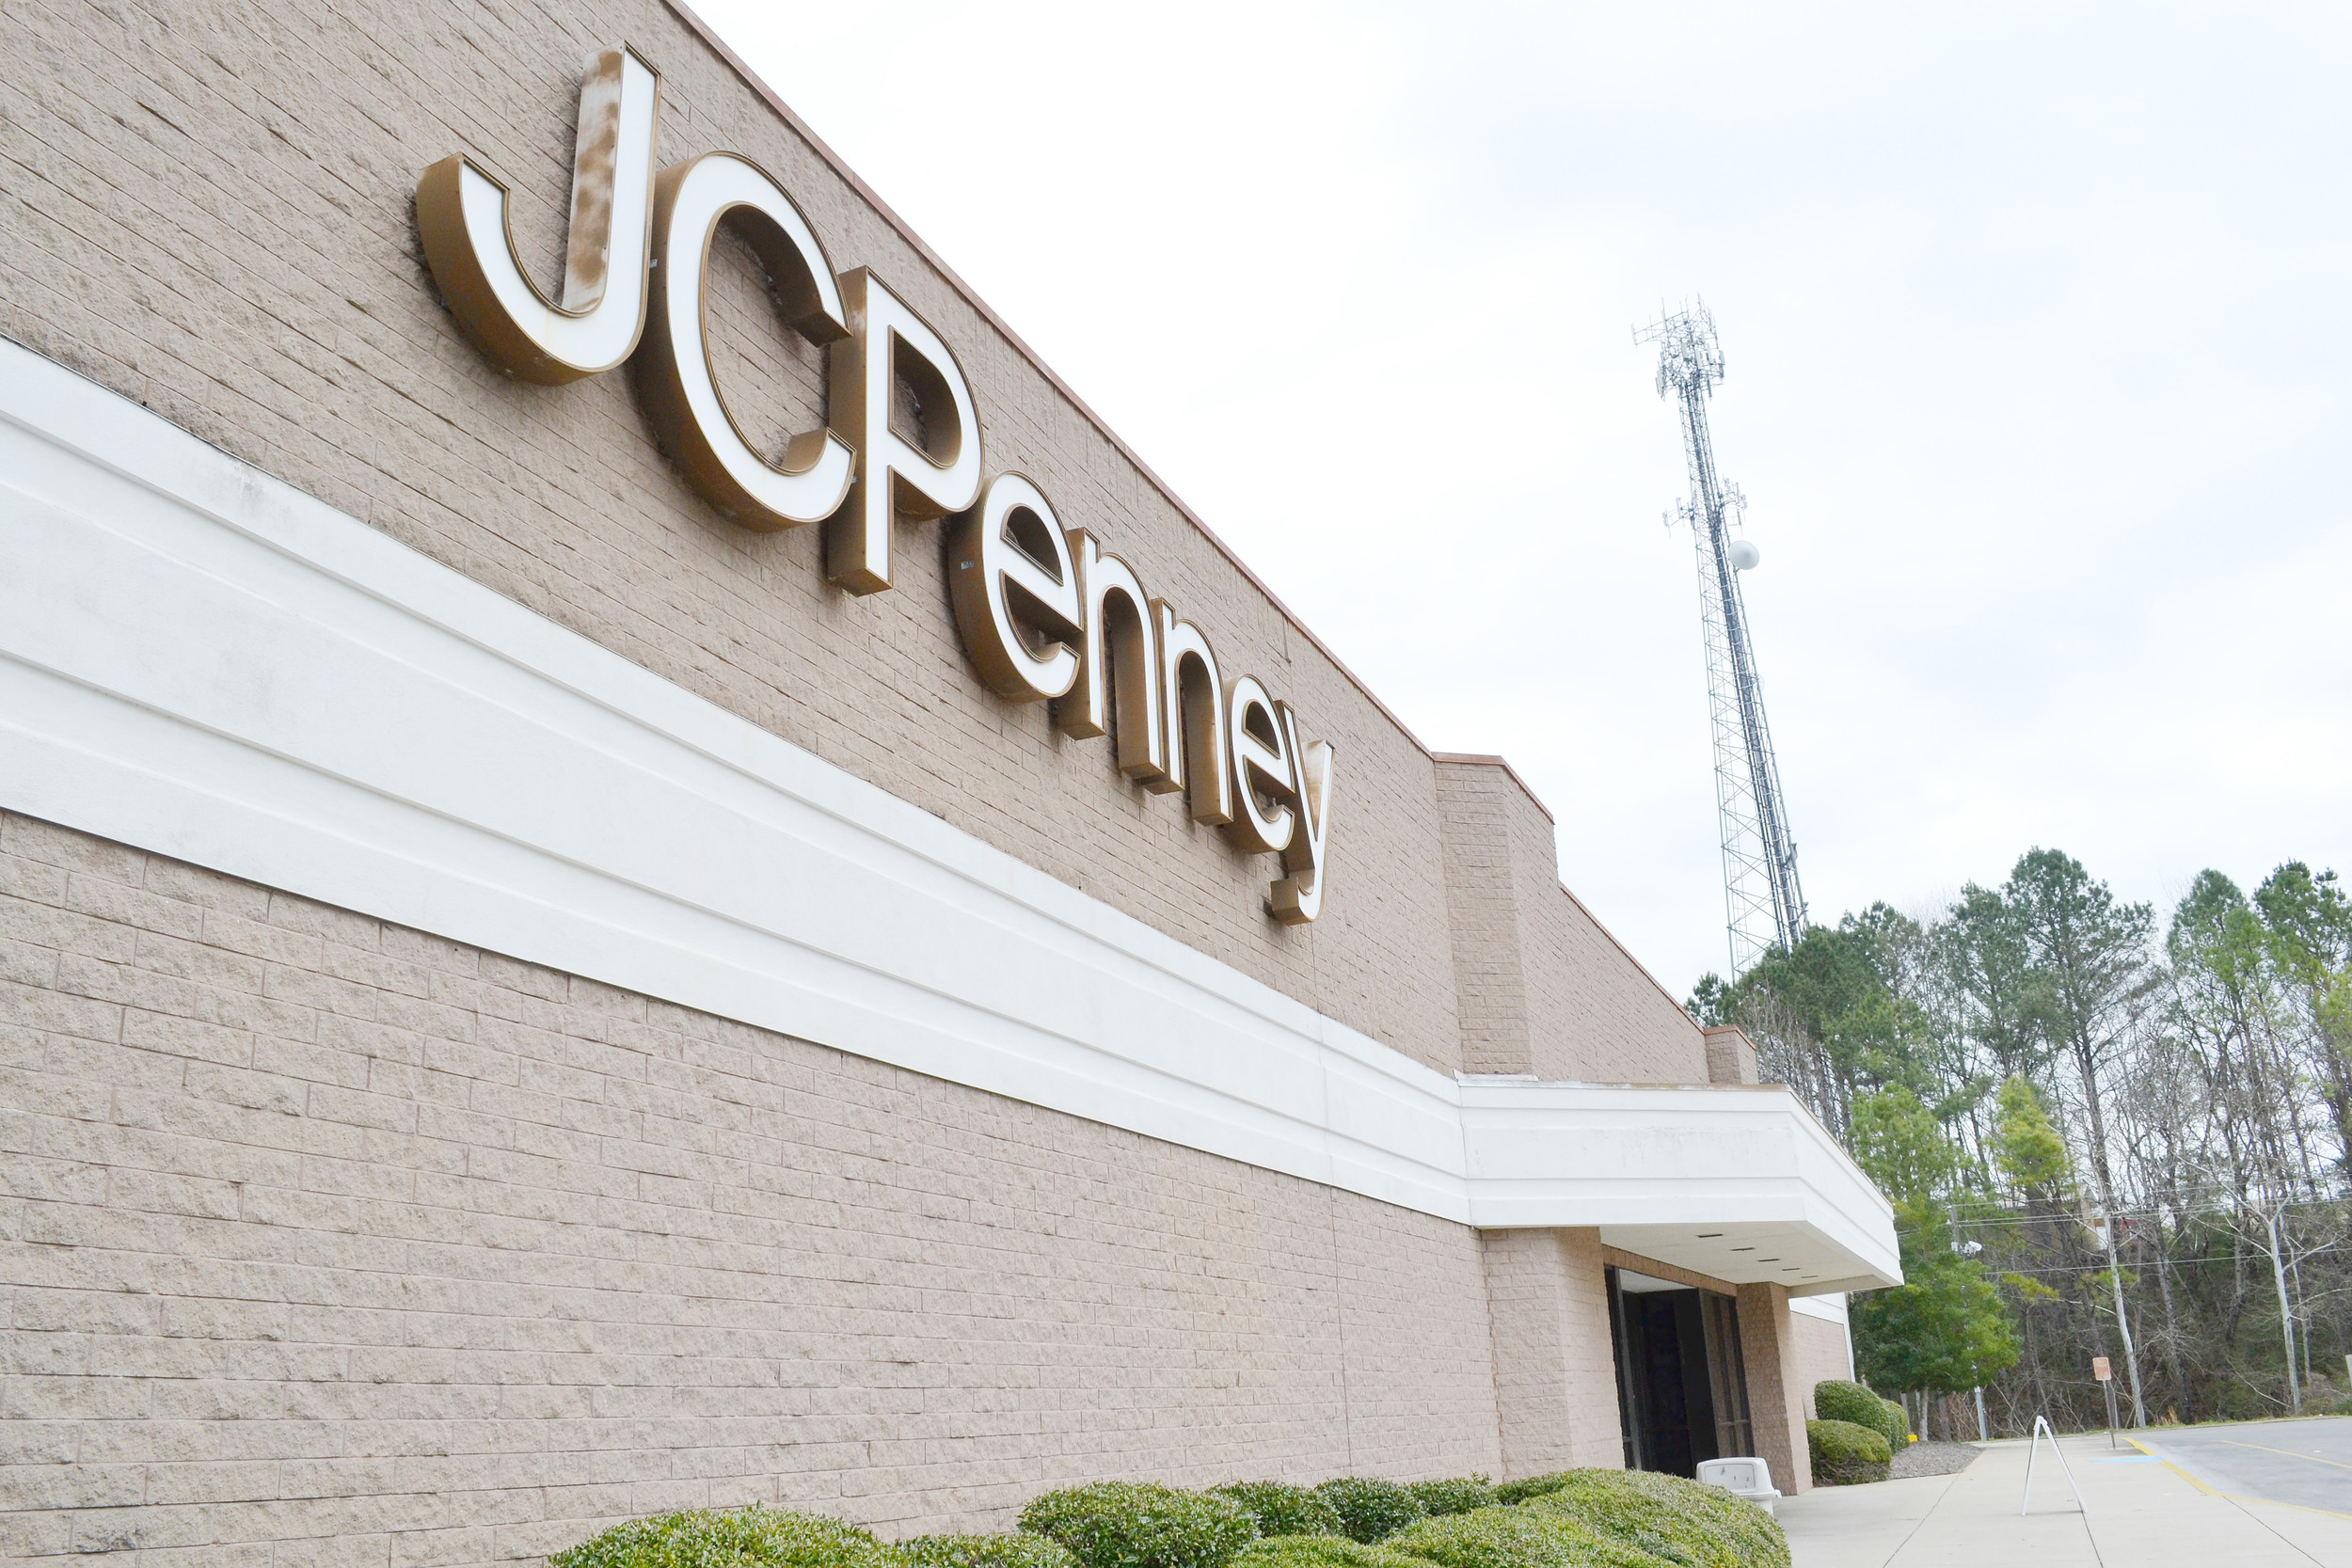 An announcement was made Friday that JCPenney was closing 138 stores nationwide, including the one in Jasper Mall. Daily Mountain Eagle - Ed Howell